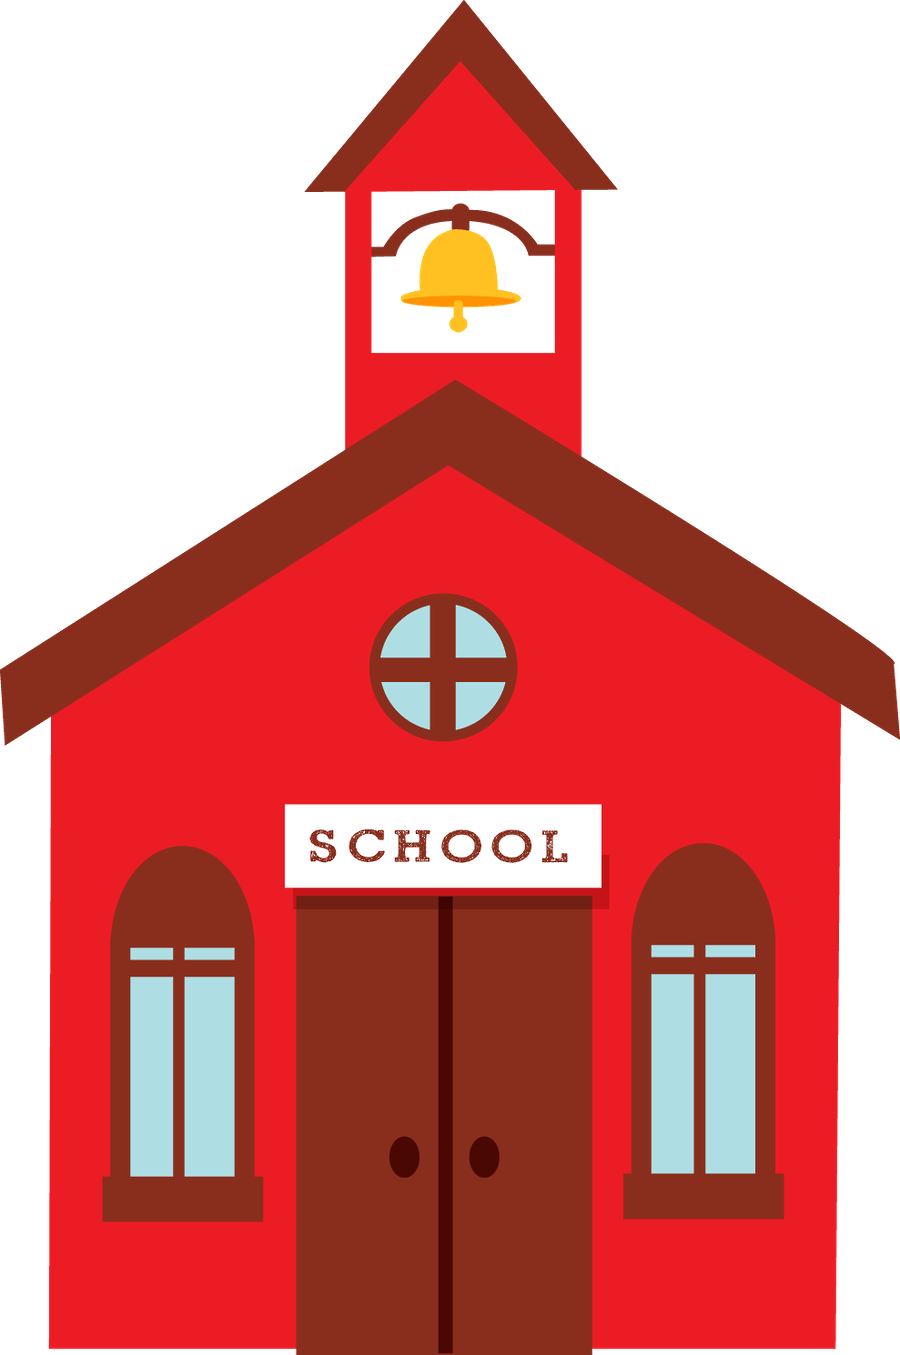 free png School Clipart images transparent